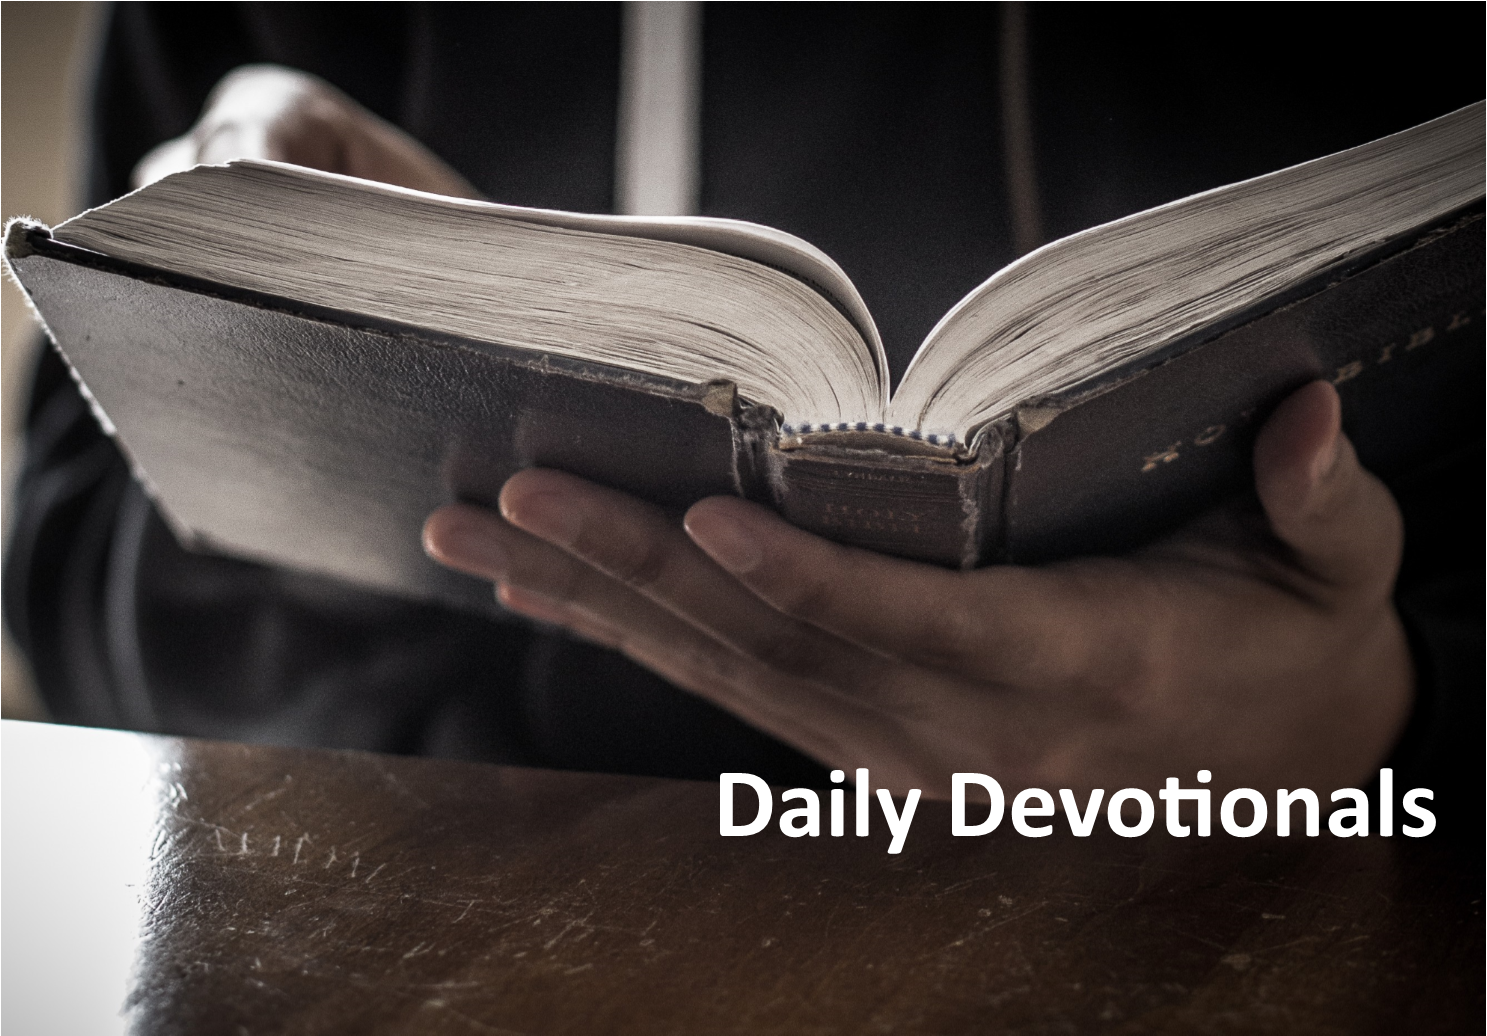 Daily devo.png